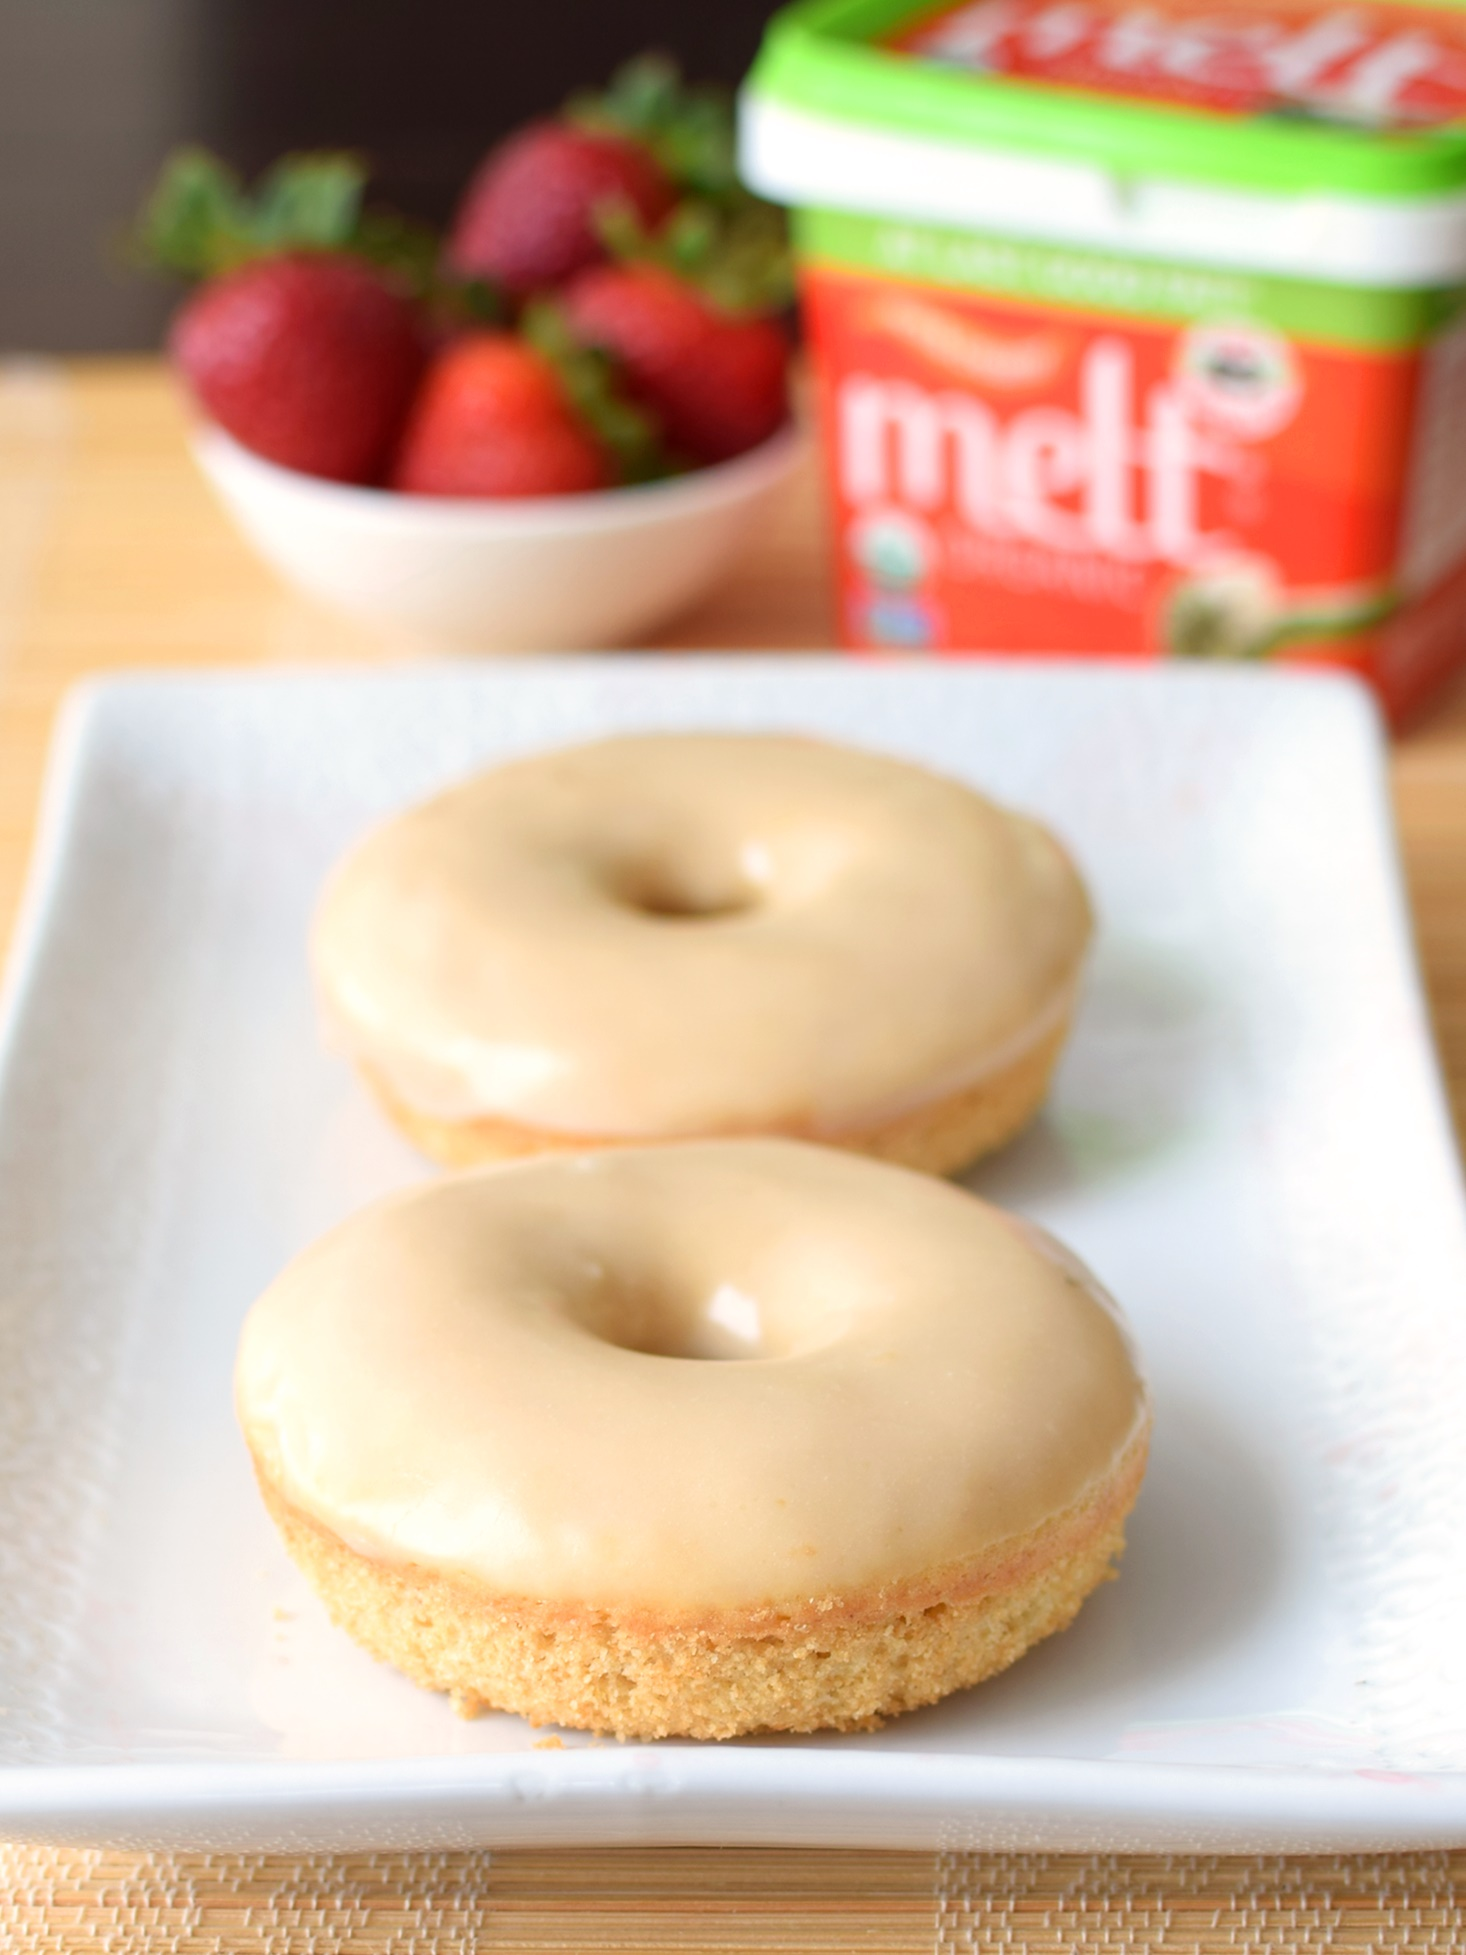 Glazed Dairy-Free Cake Donuts from my Strawberry Shortcake Donuts Recipe - Delicious, quick, whole grain cake donuts!